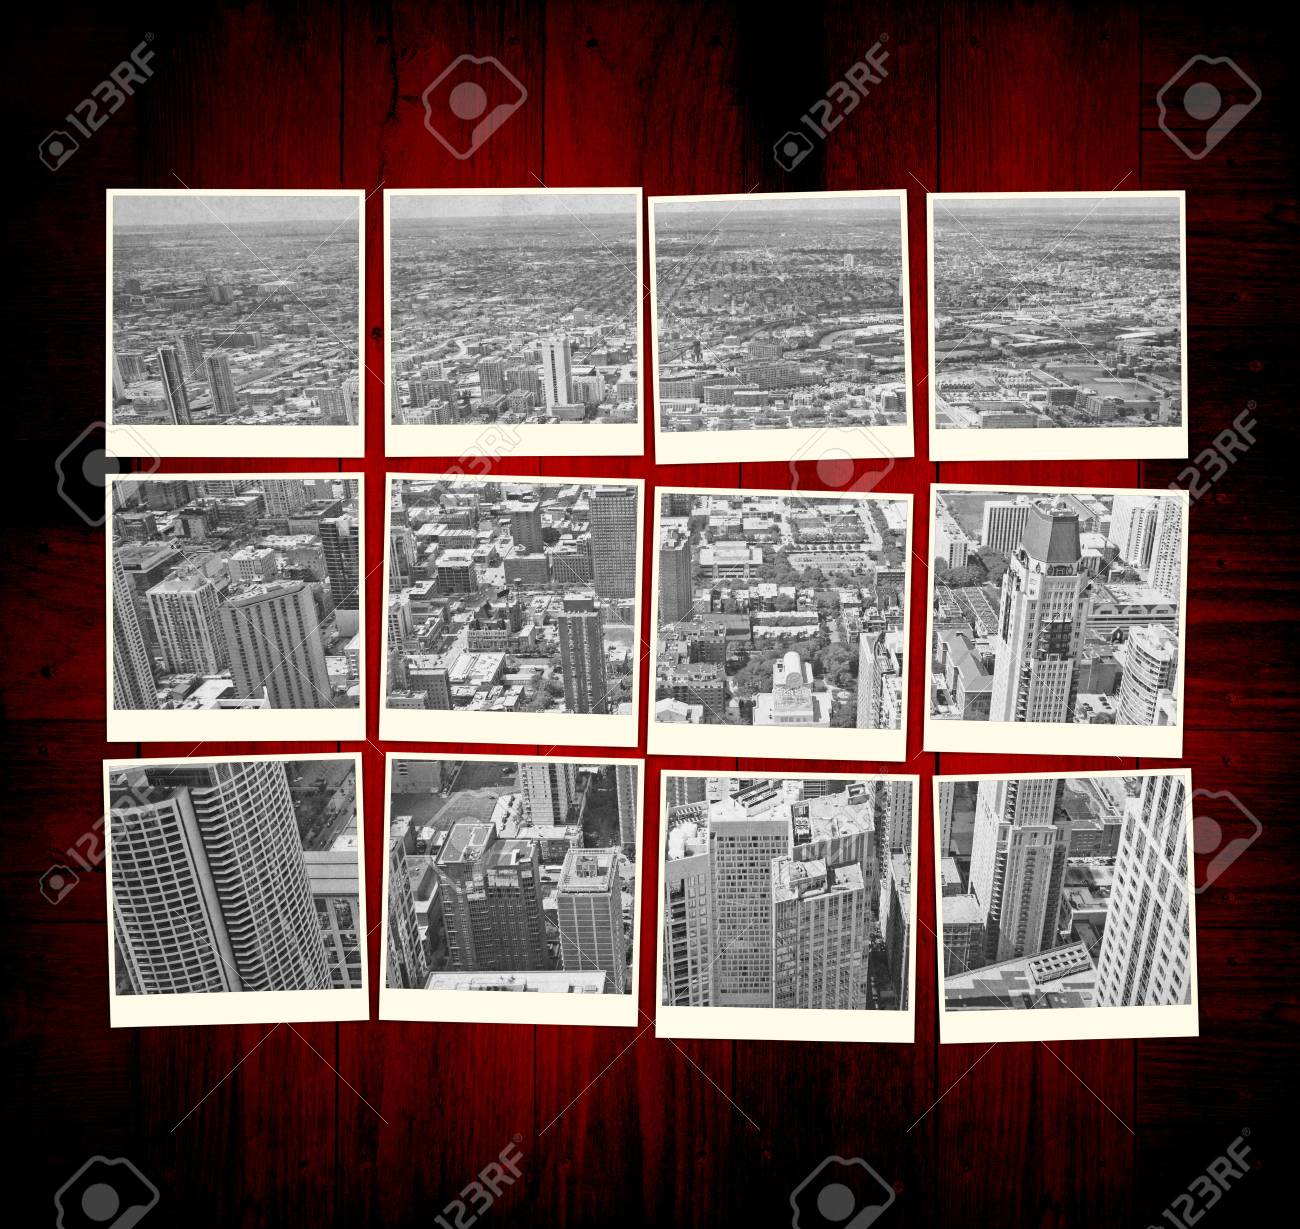 Pictures Stock Photo - 15905866